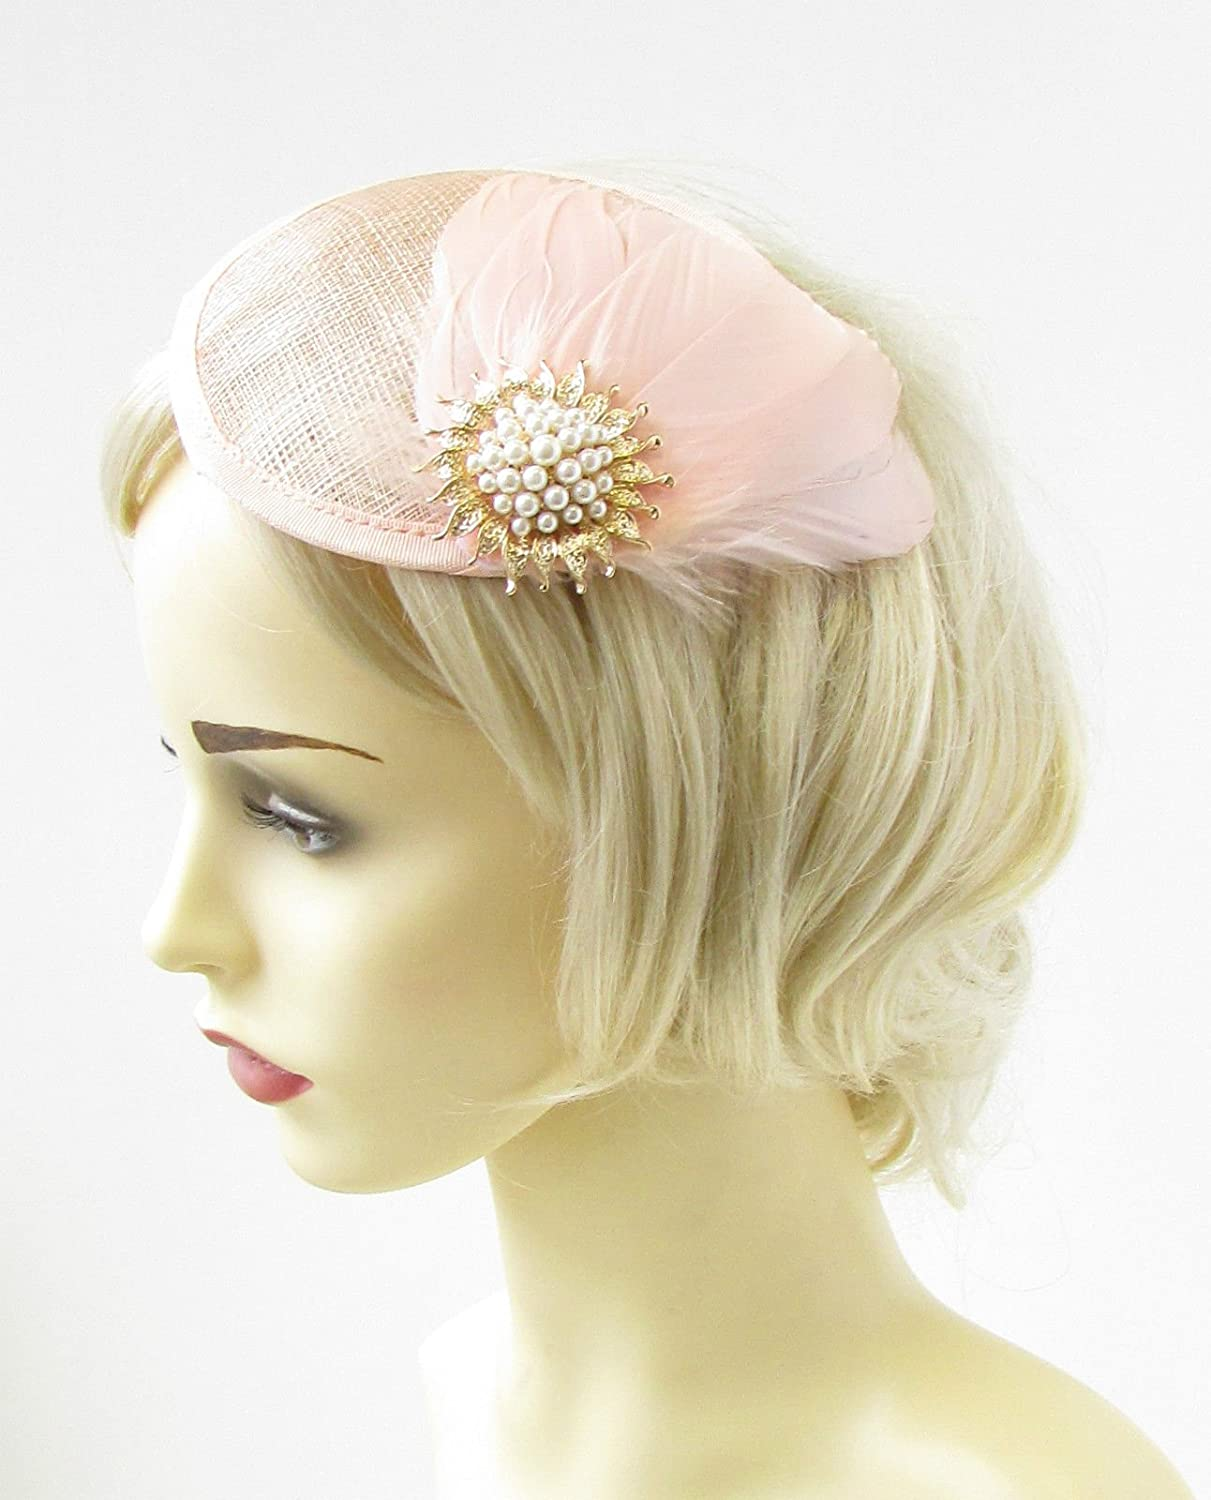 Blush Pink Gold Ivory Feather Fascinator Wedding Races Hair Clip Hat  Vintage 974  EXCLUSIVELY SOLD BY STARCROSSED BEAUTY   Amazon.co.uk  Beauty 87ffb9c4717b